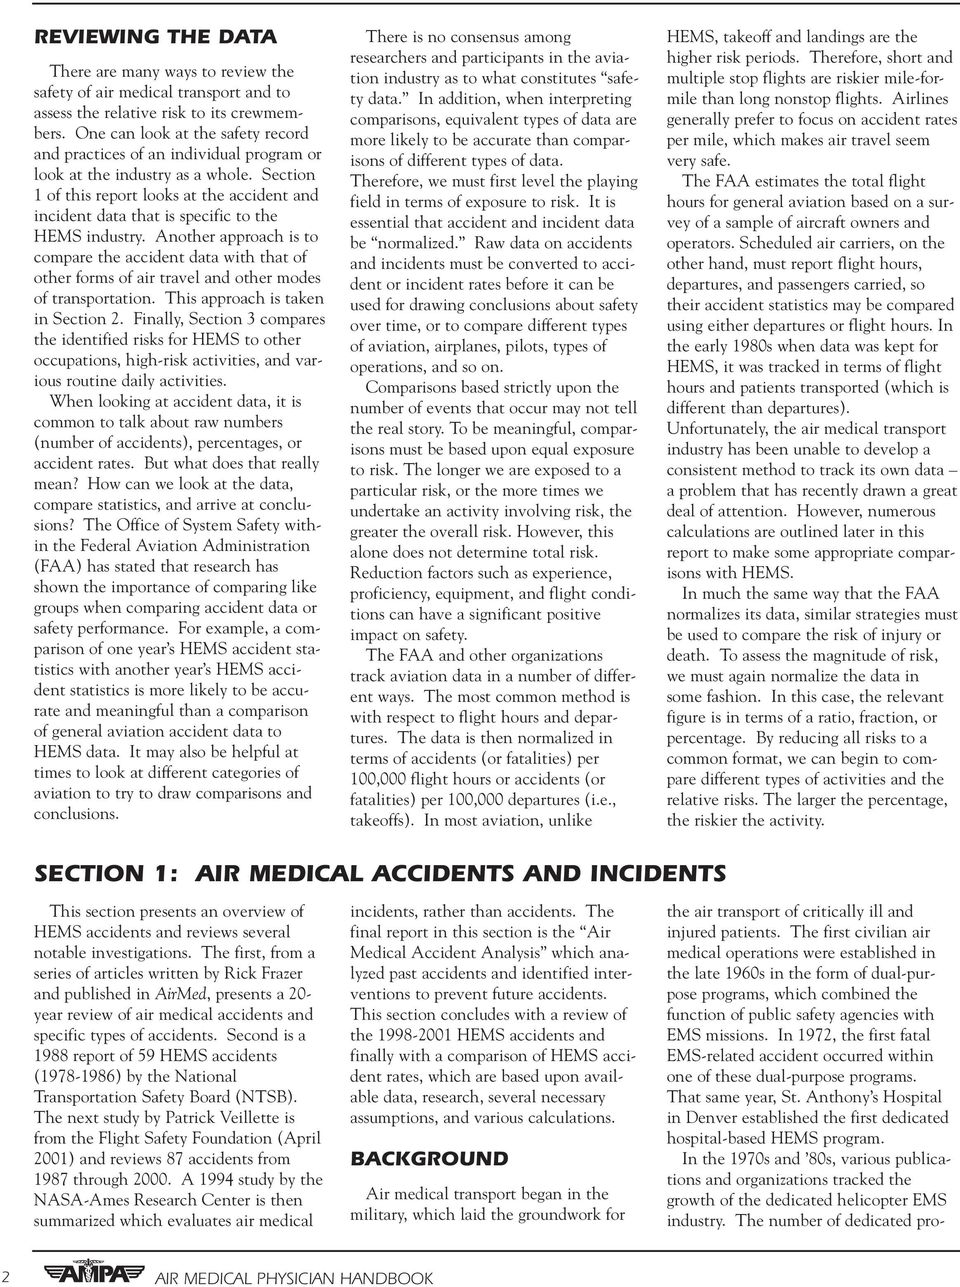 Section 1 of this report looks at the accident and incident data that is specific to the HEMS industry.